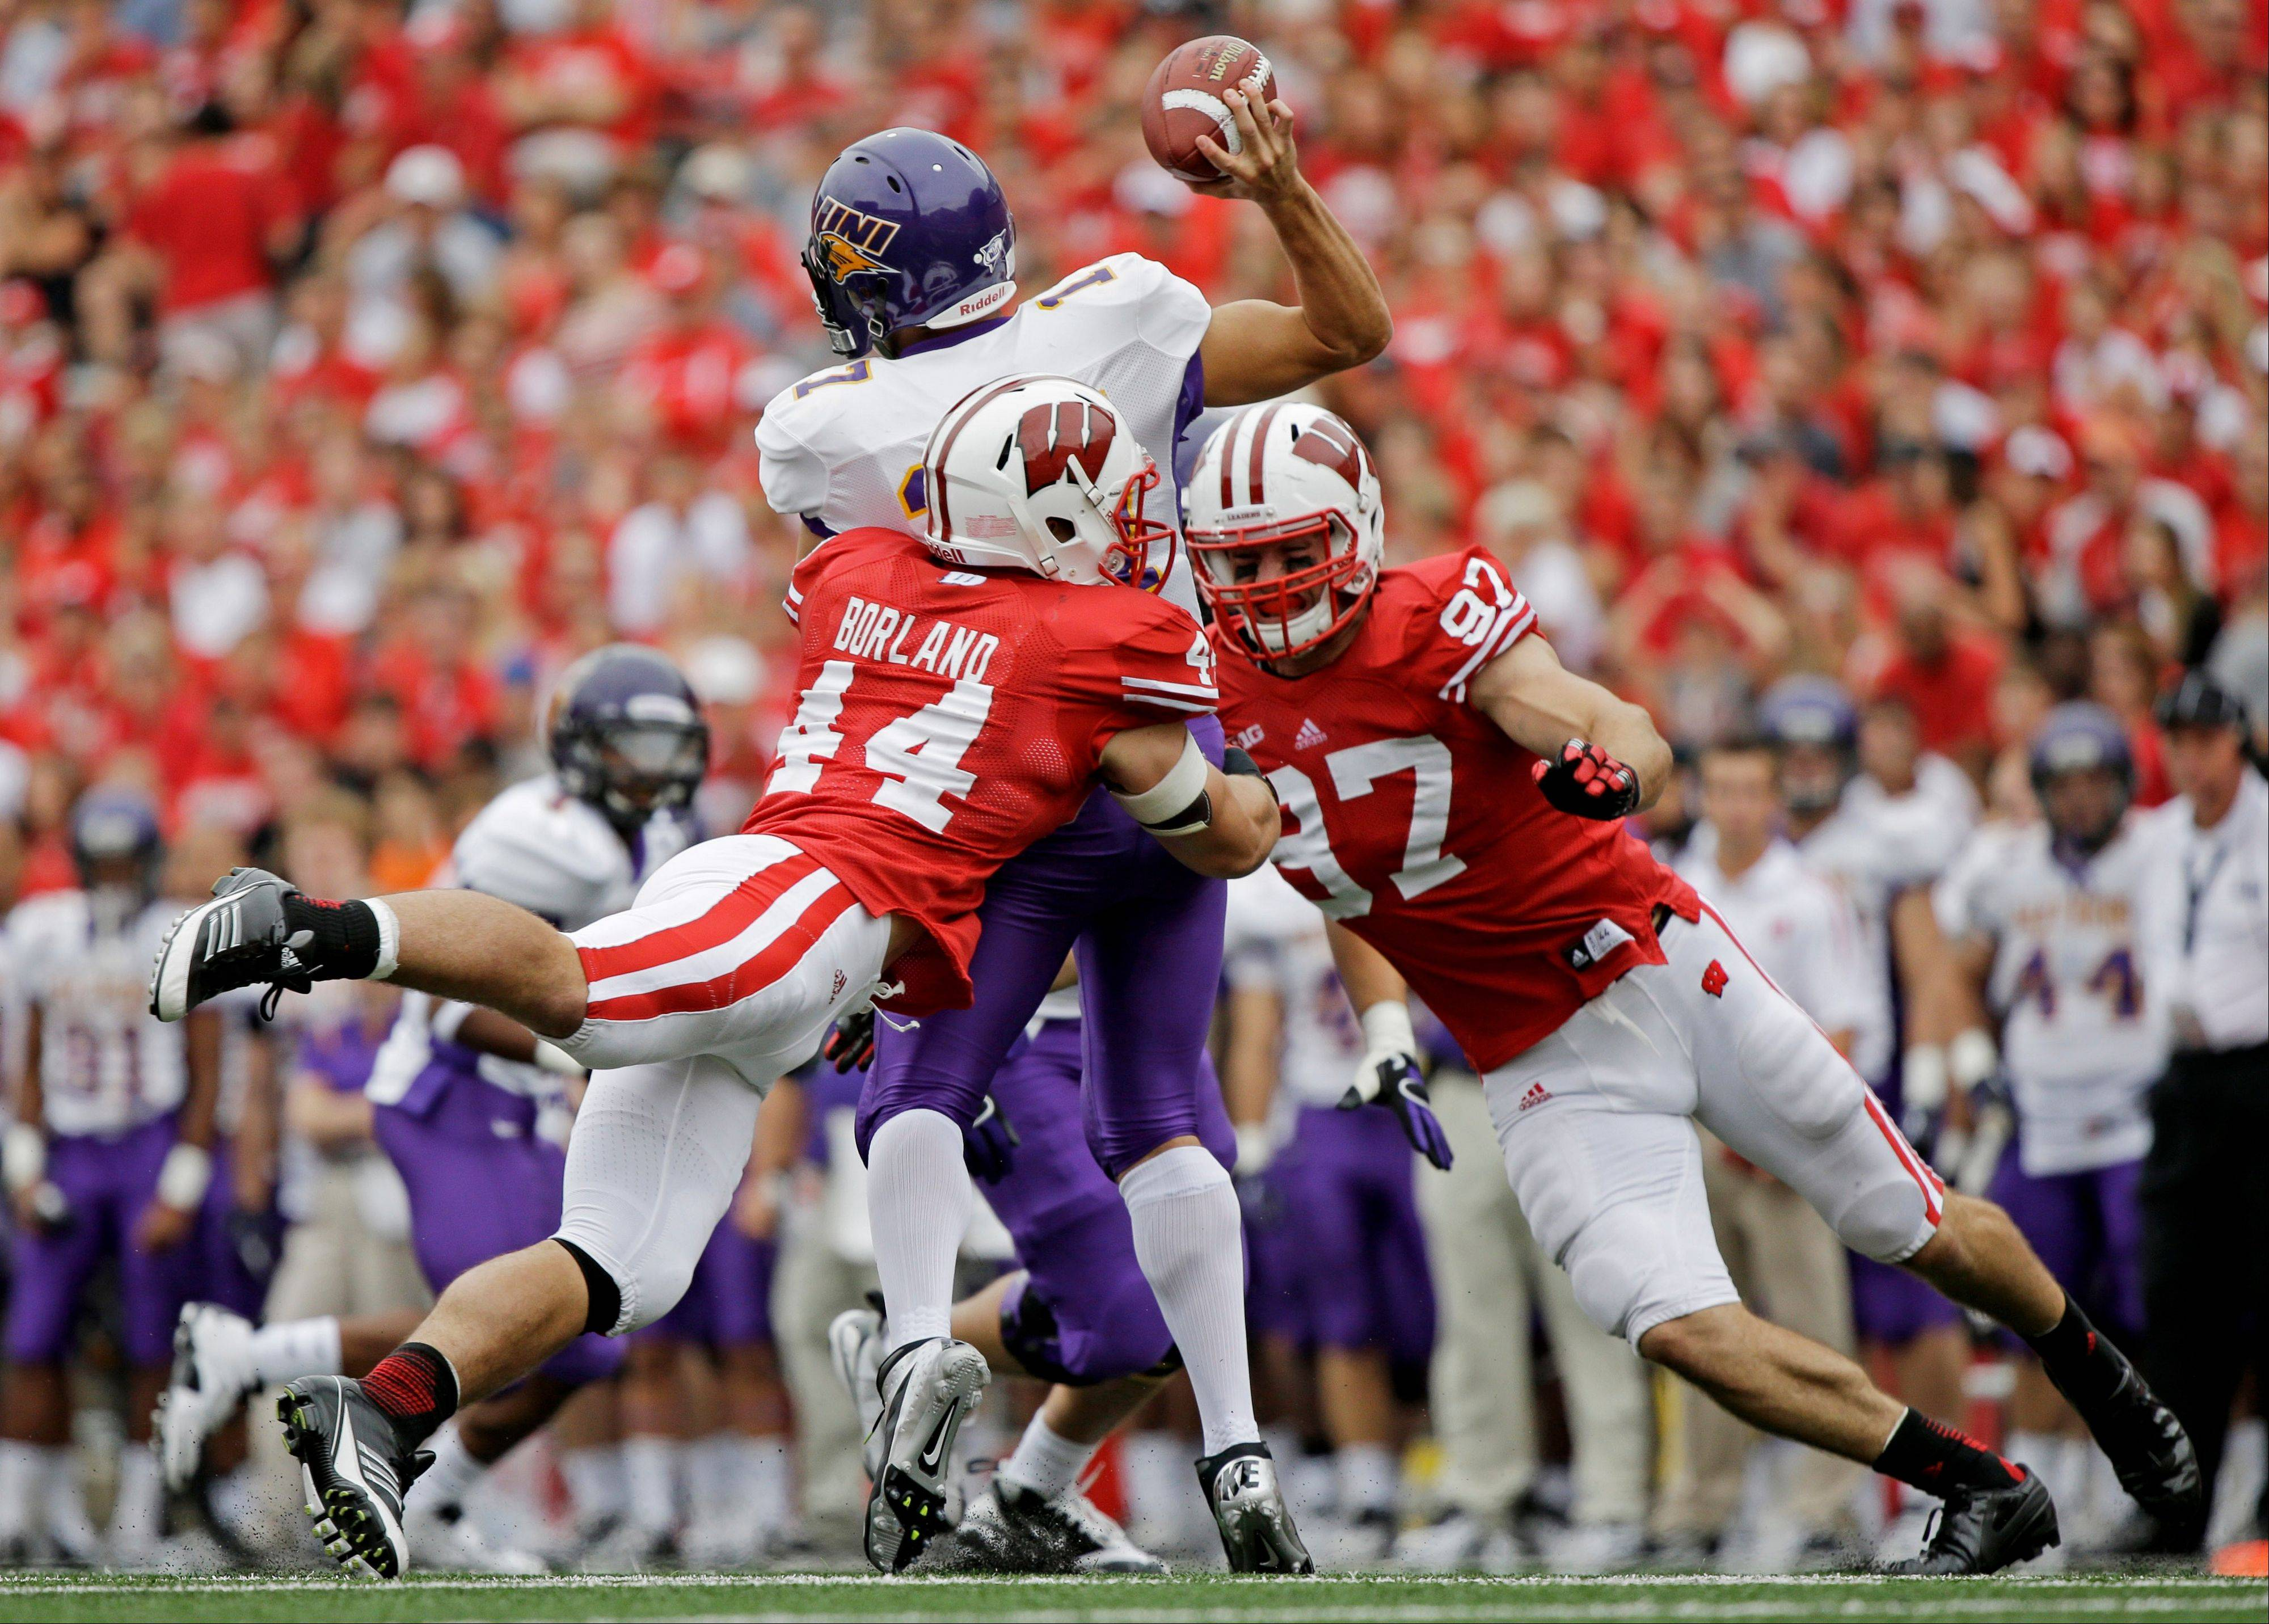 Wisconsin's Chris Borland (44) and Brendan Kelly hit Northern Iowa's Sawyer Kollmorgen as he throws during a game last season in Madison. Borland's 13 career forced fumbles are one short of tying the major college record.